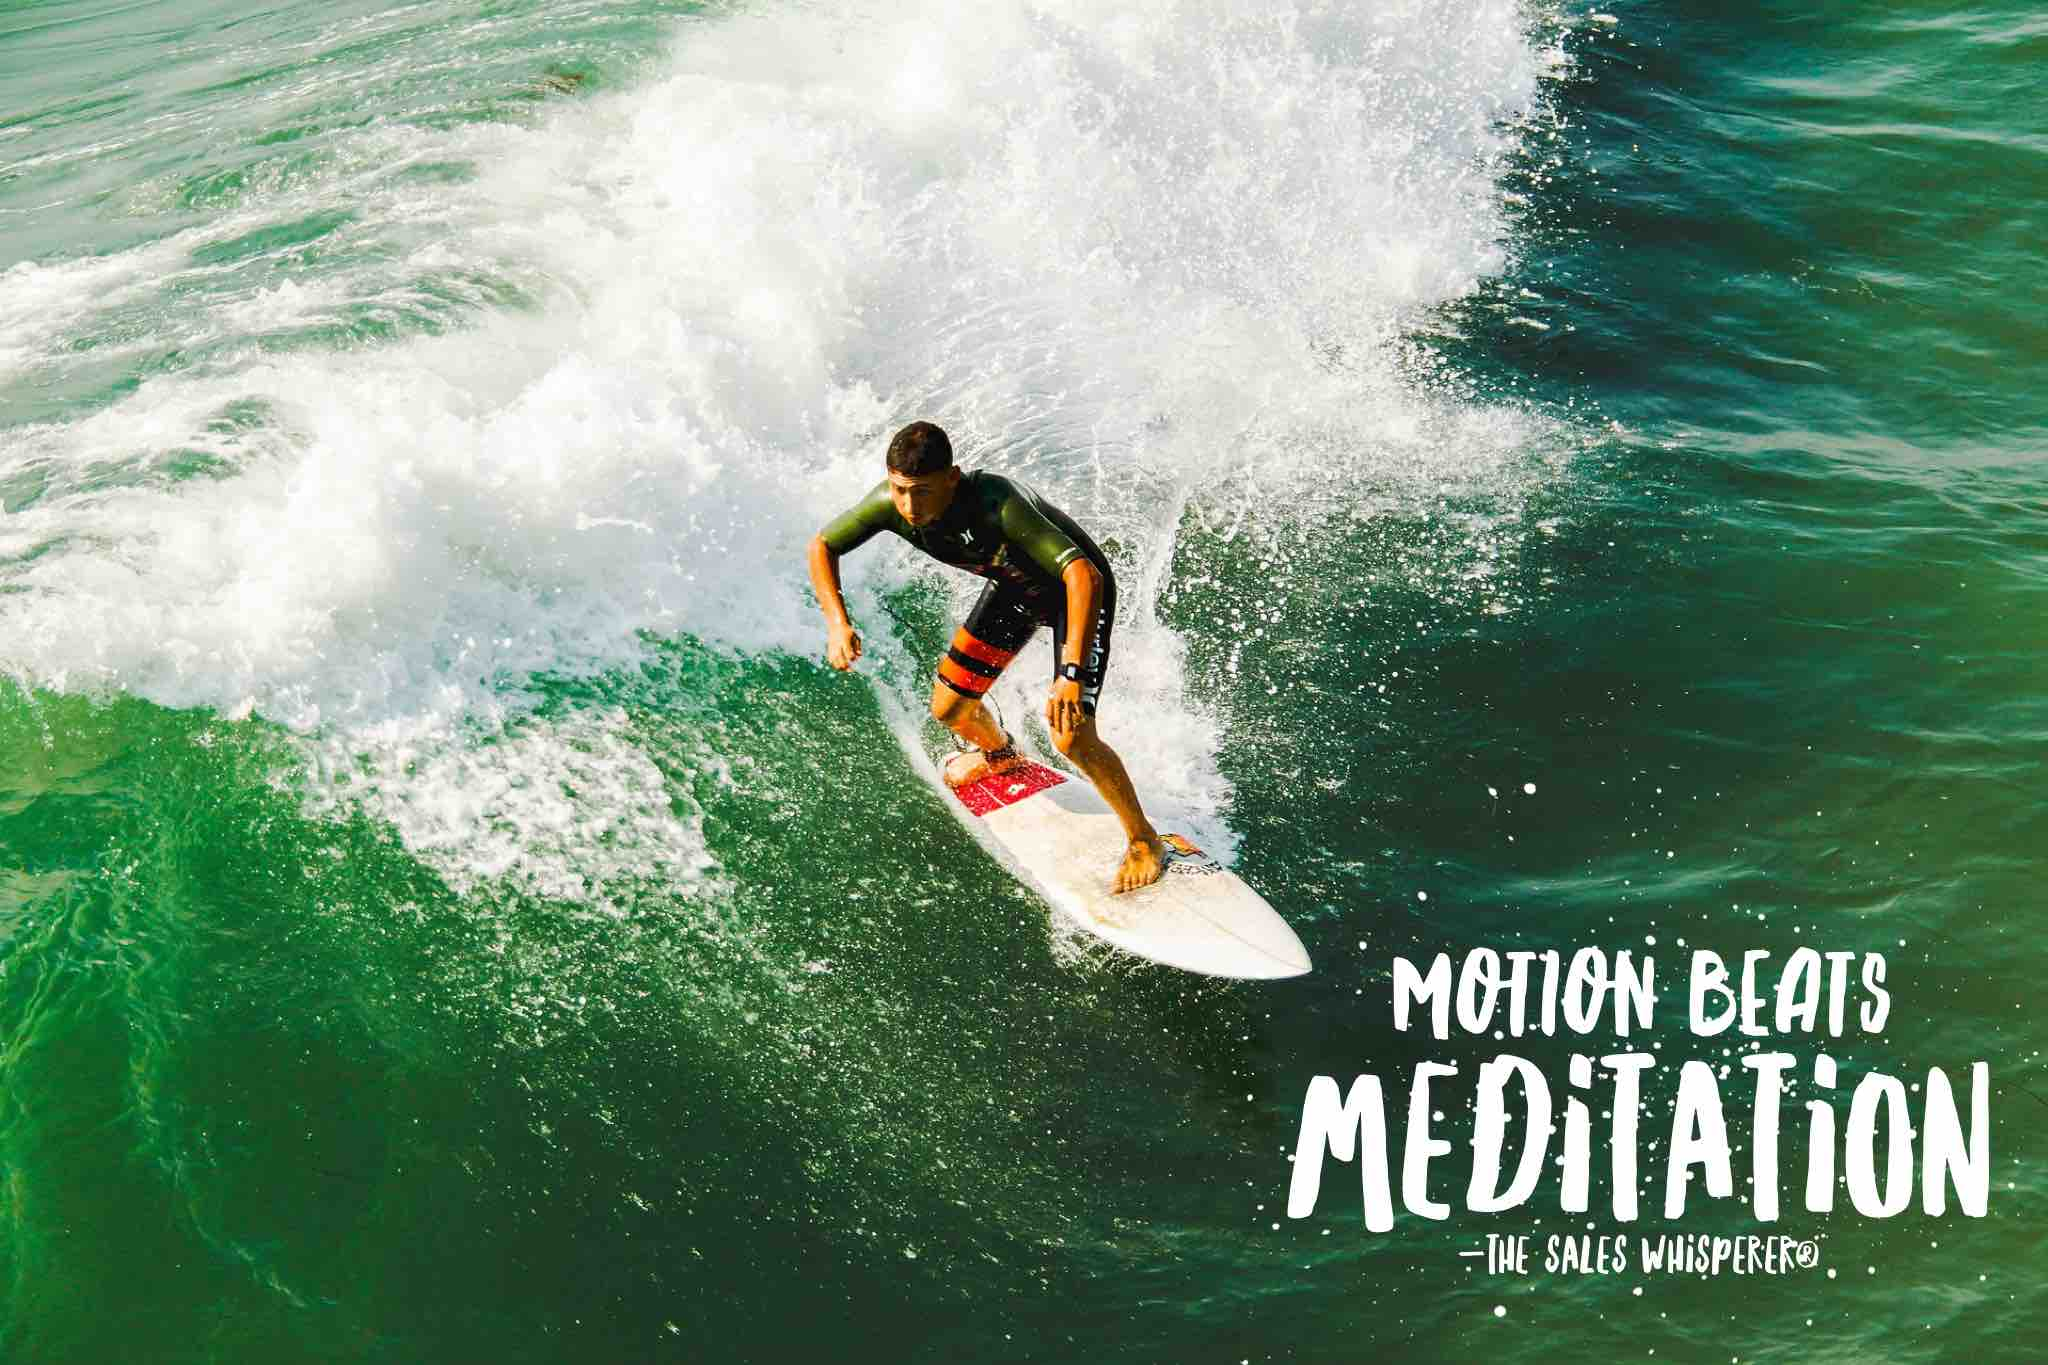 Motion Beats Meditation Wes Schaeffer, The Sales Whisperer®